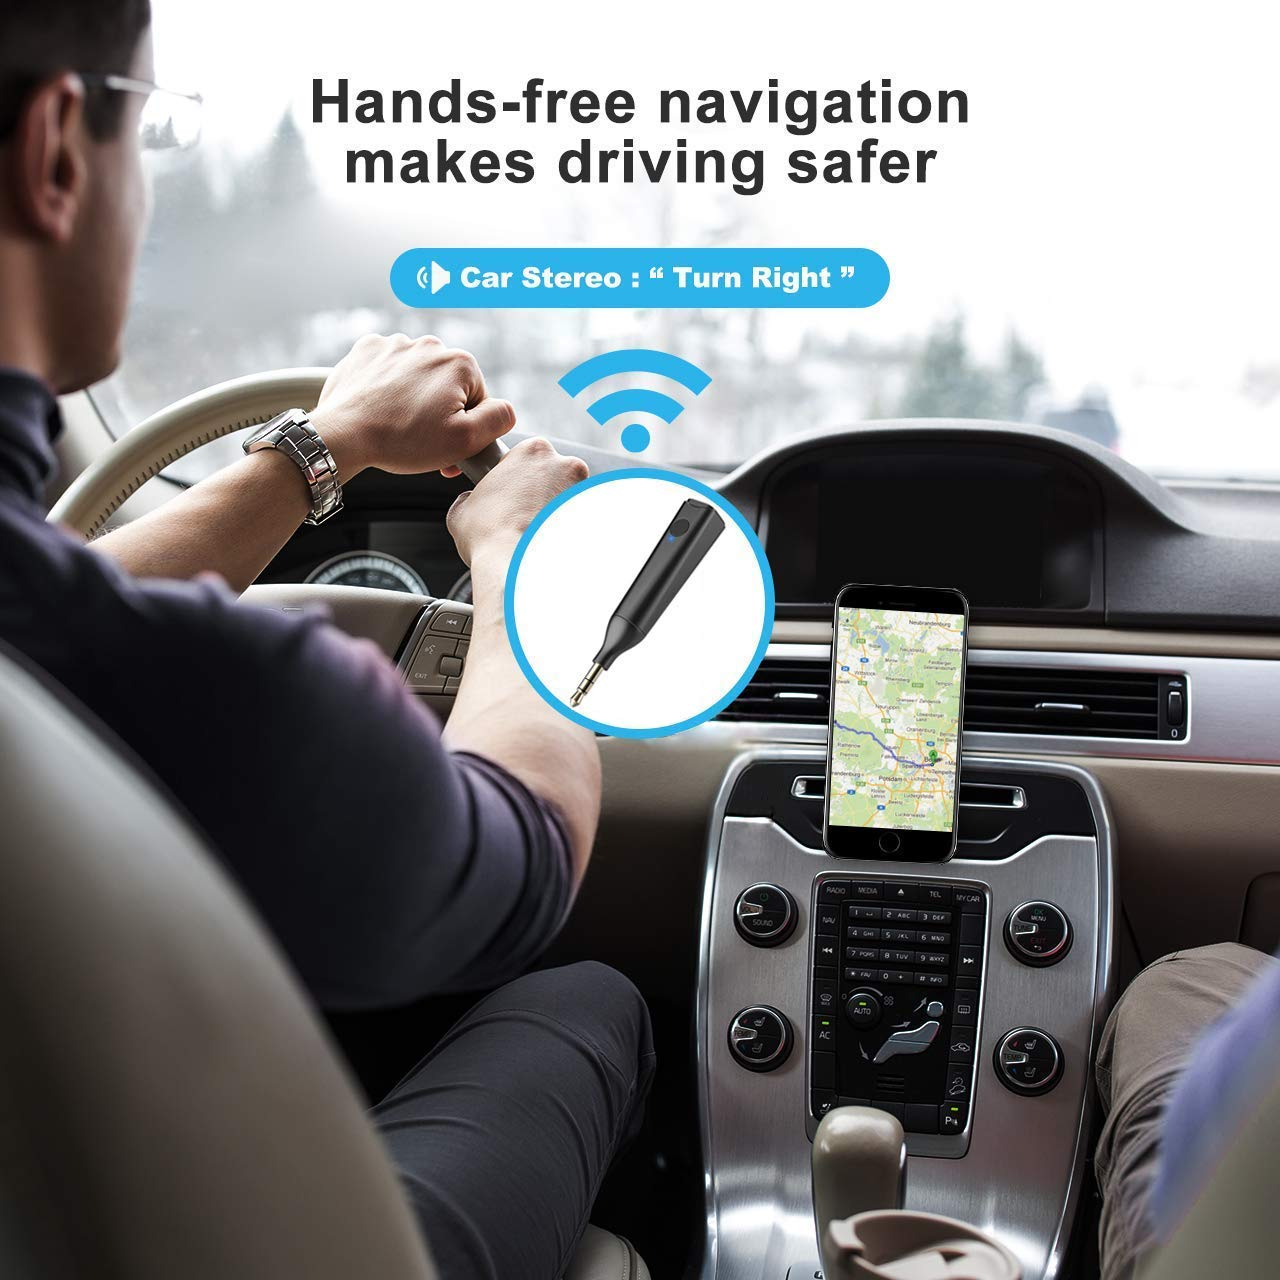 Hands-Free Car Kits 3.5mm Bluetooth Audio Jack for Home /& Car Audio Music Streaming Stereo System MANLI Wireless Mini Bluetooth 5.0 Adapter Aux Receiver Mini Bluetooth 5.0 Receiver